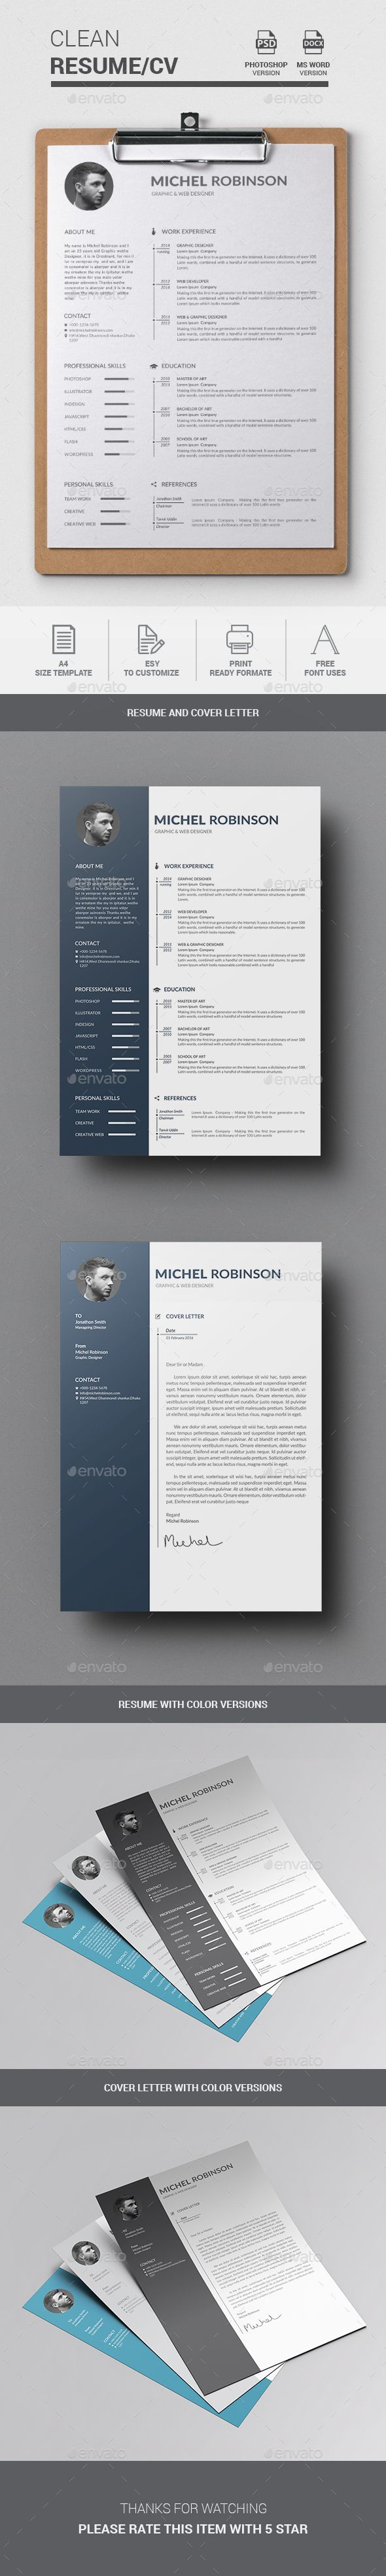 The 25+ best Cv structure ideas on Pinterest | Resume structure ...